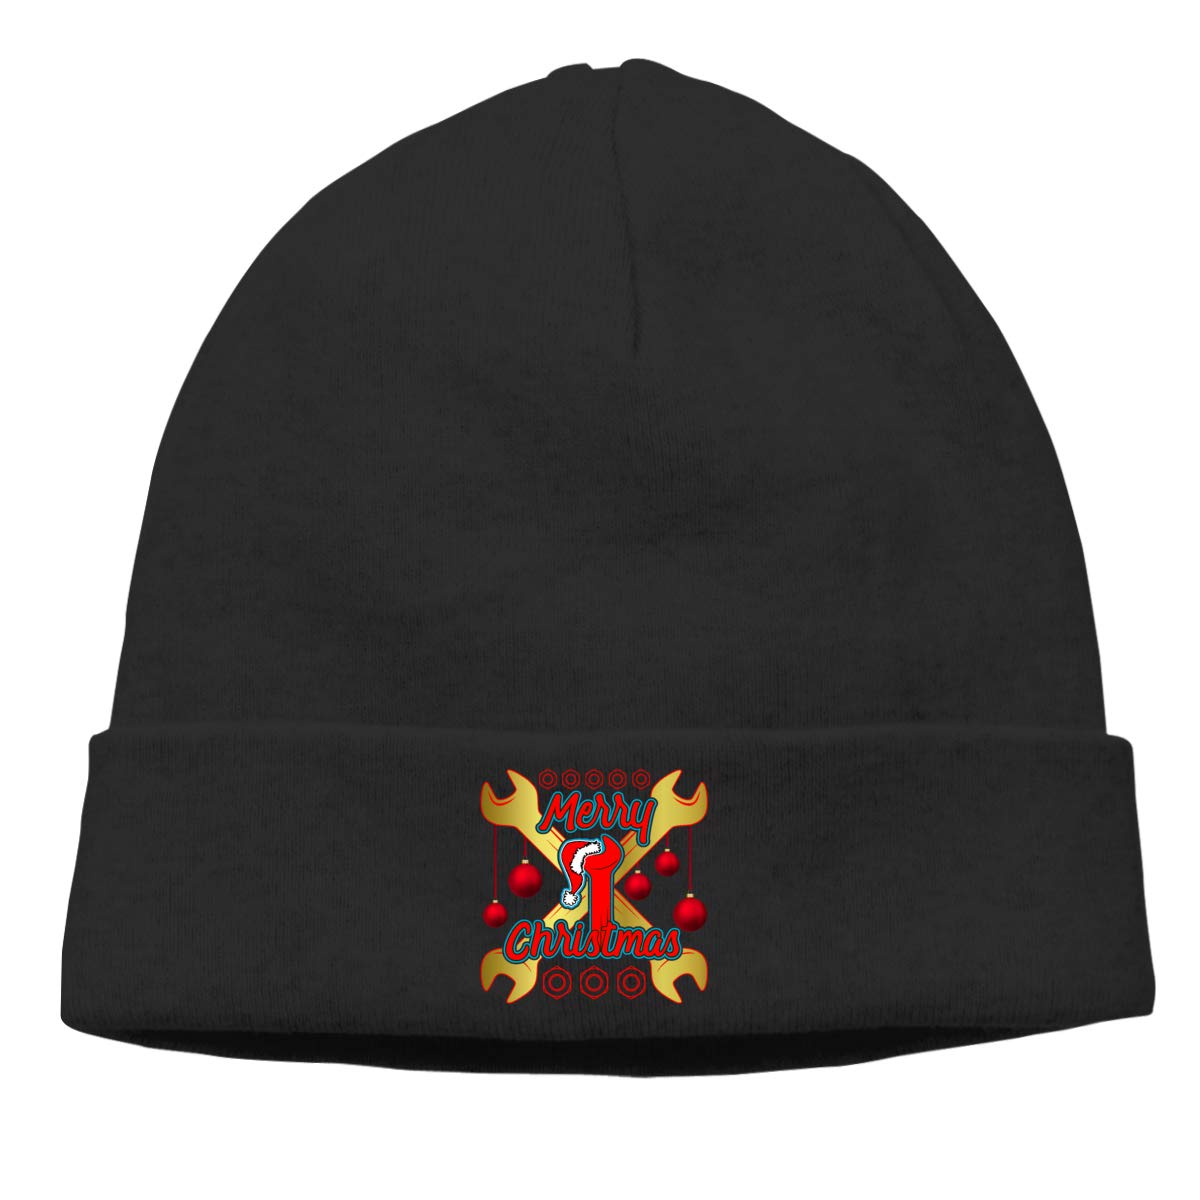 Merry Christmas Cross Wrench with Hat Knit Cap Beanie Hats Skull for Mens Black